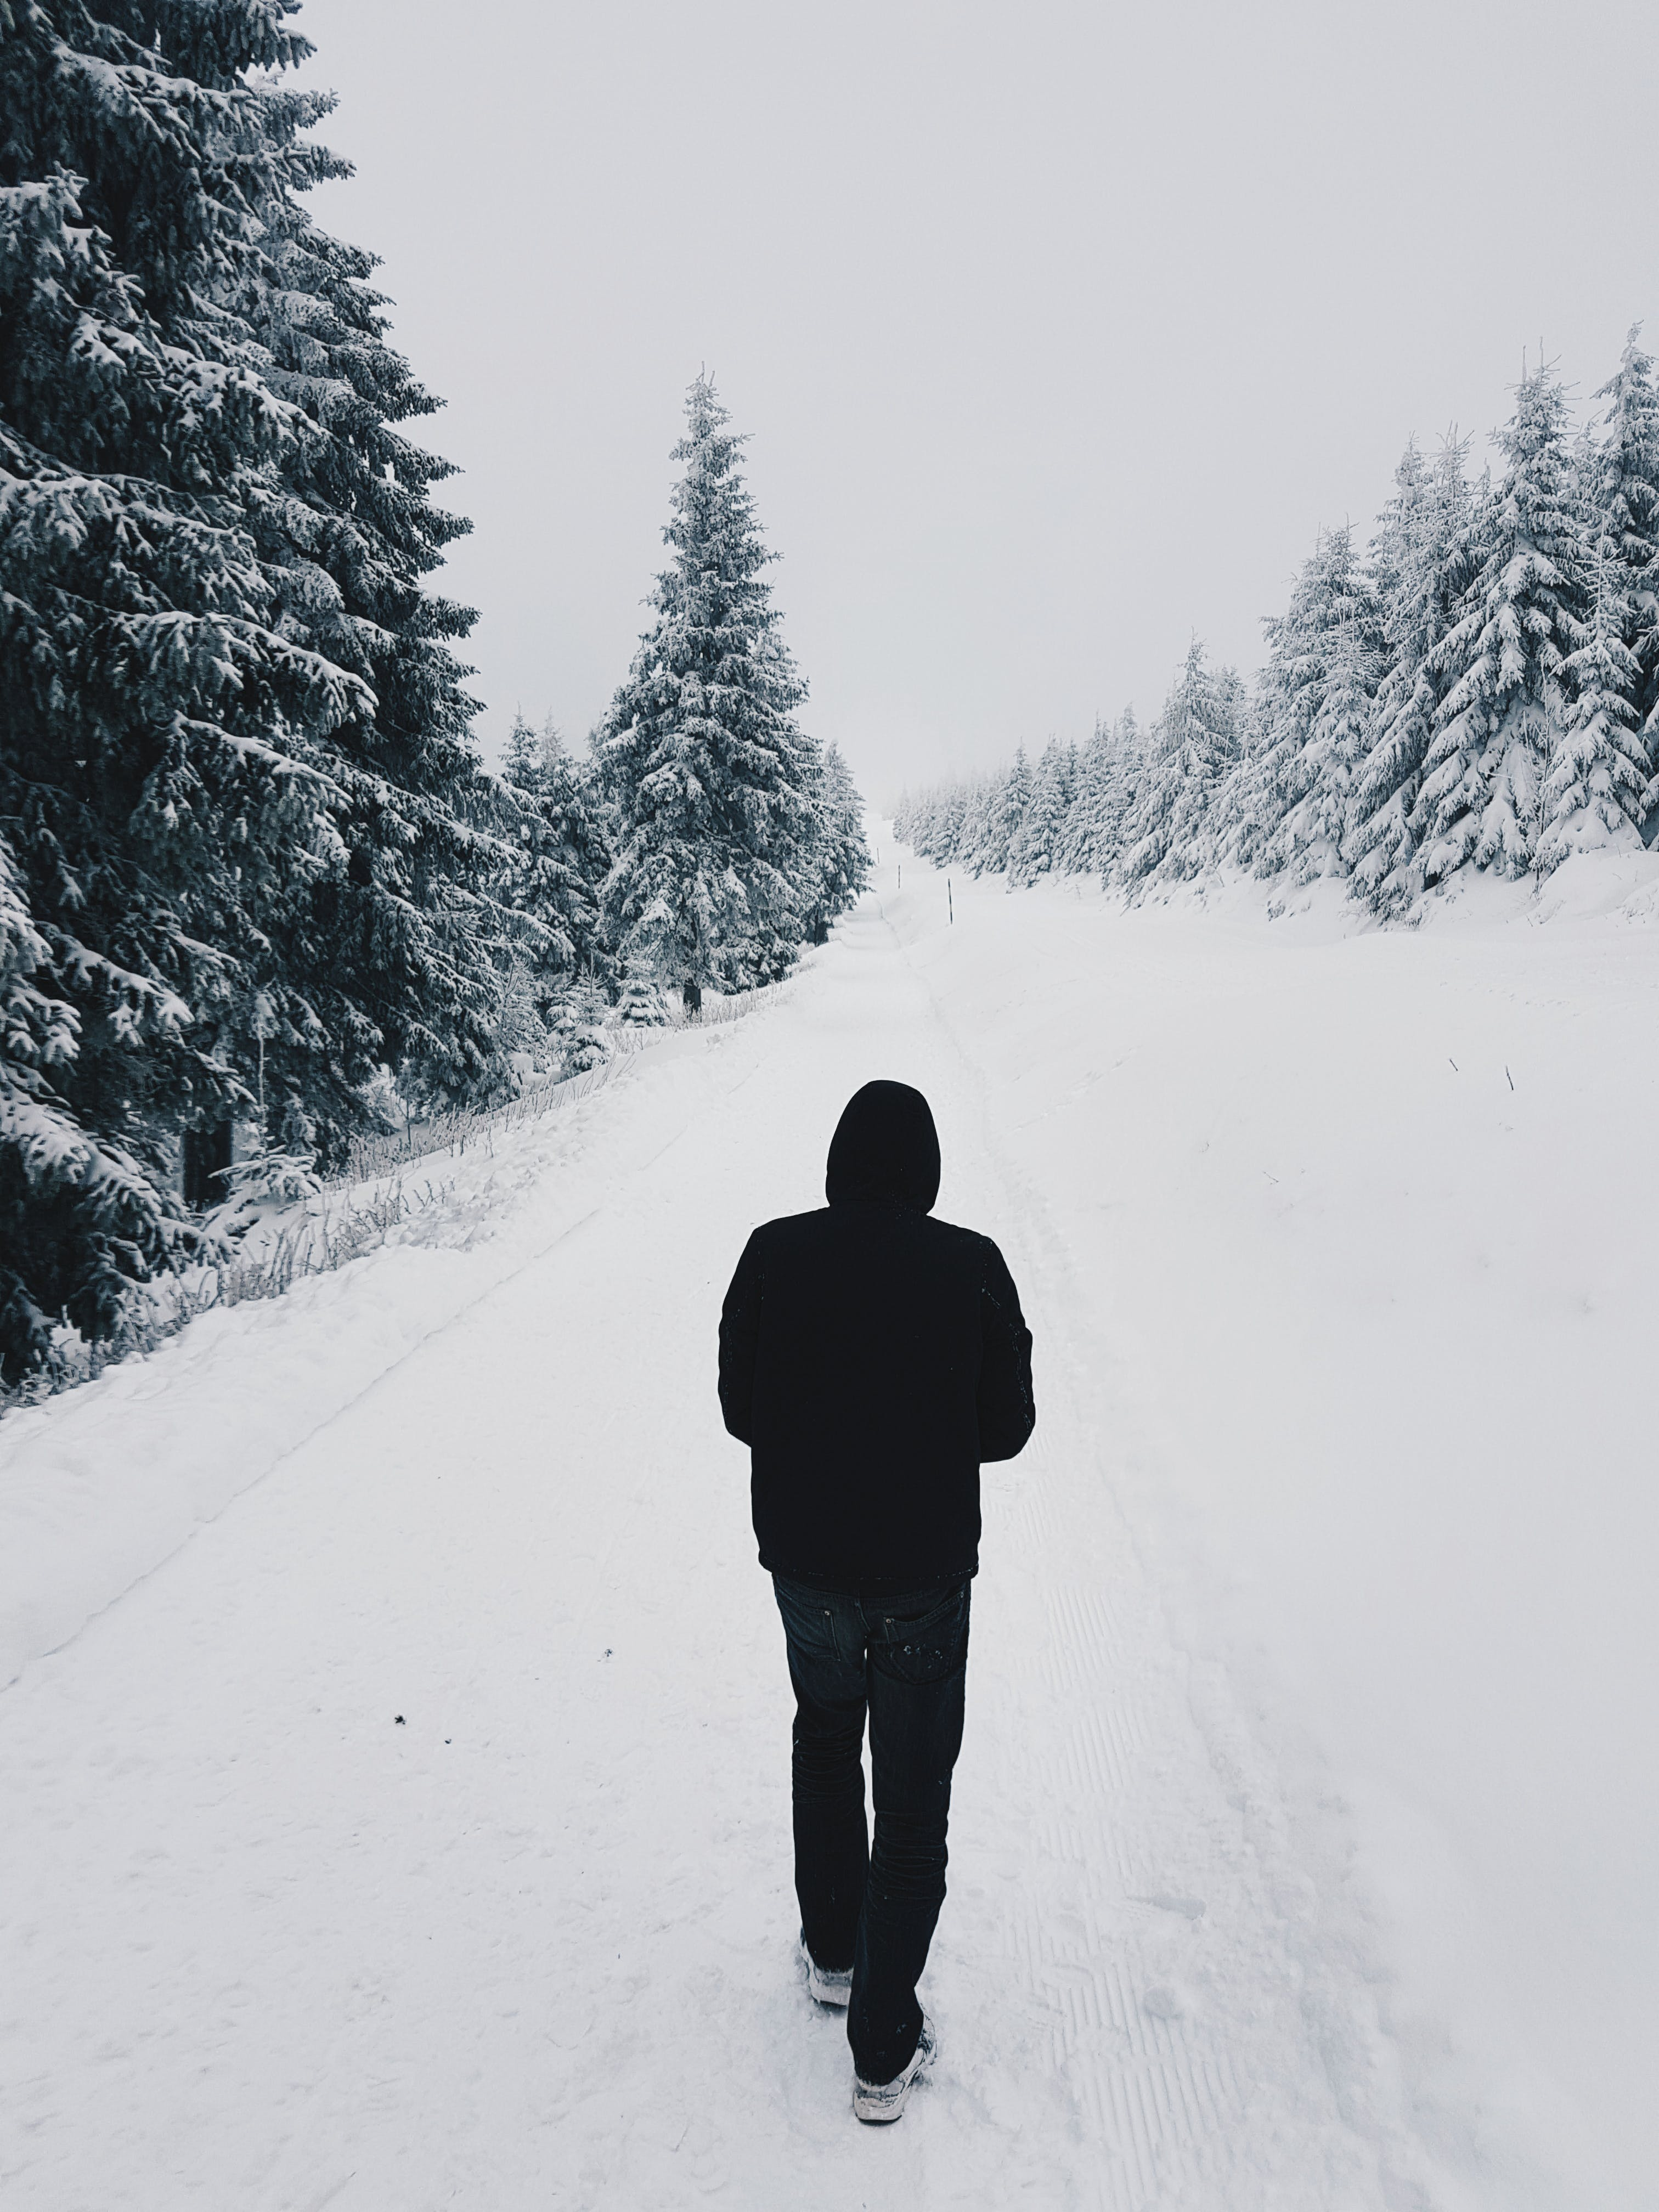 Person Wearing Black Hoodie While Walking on Snow Covered Road Near Pine Trees